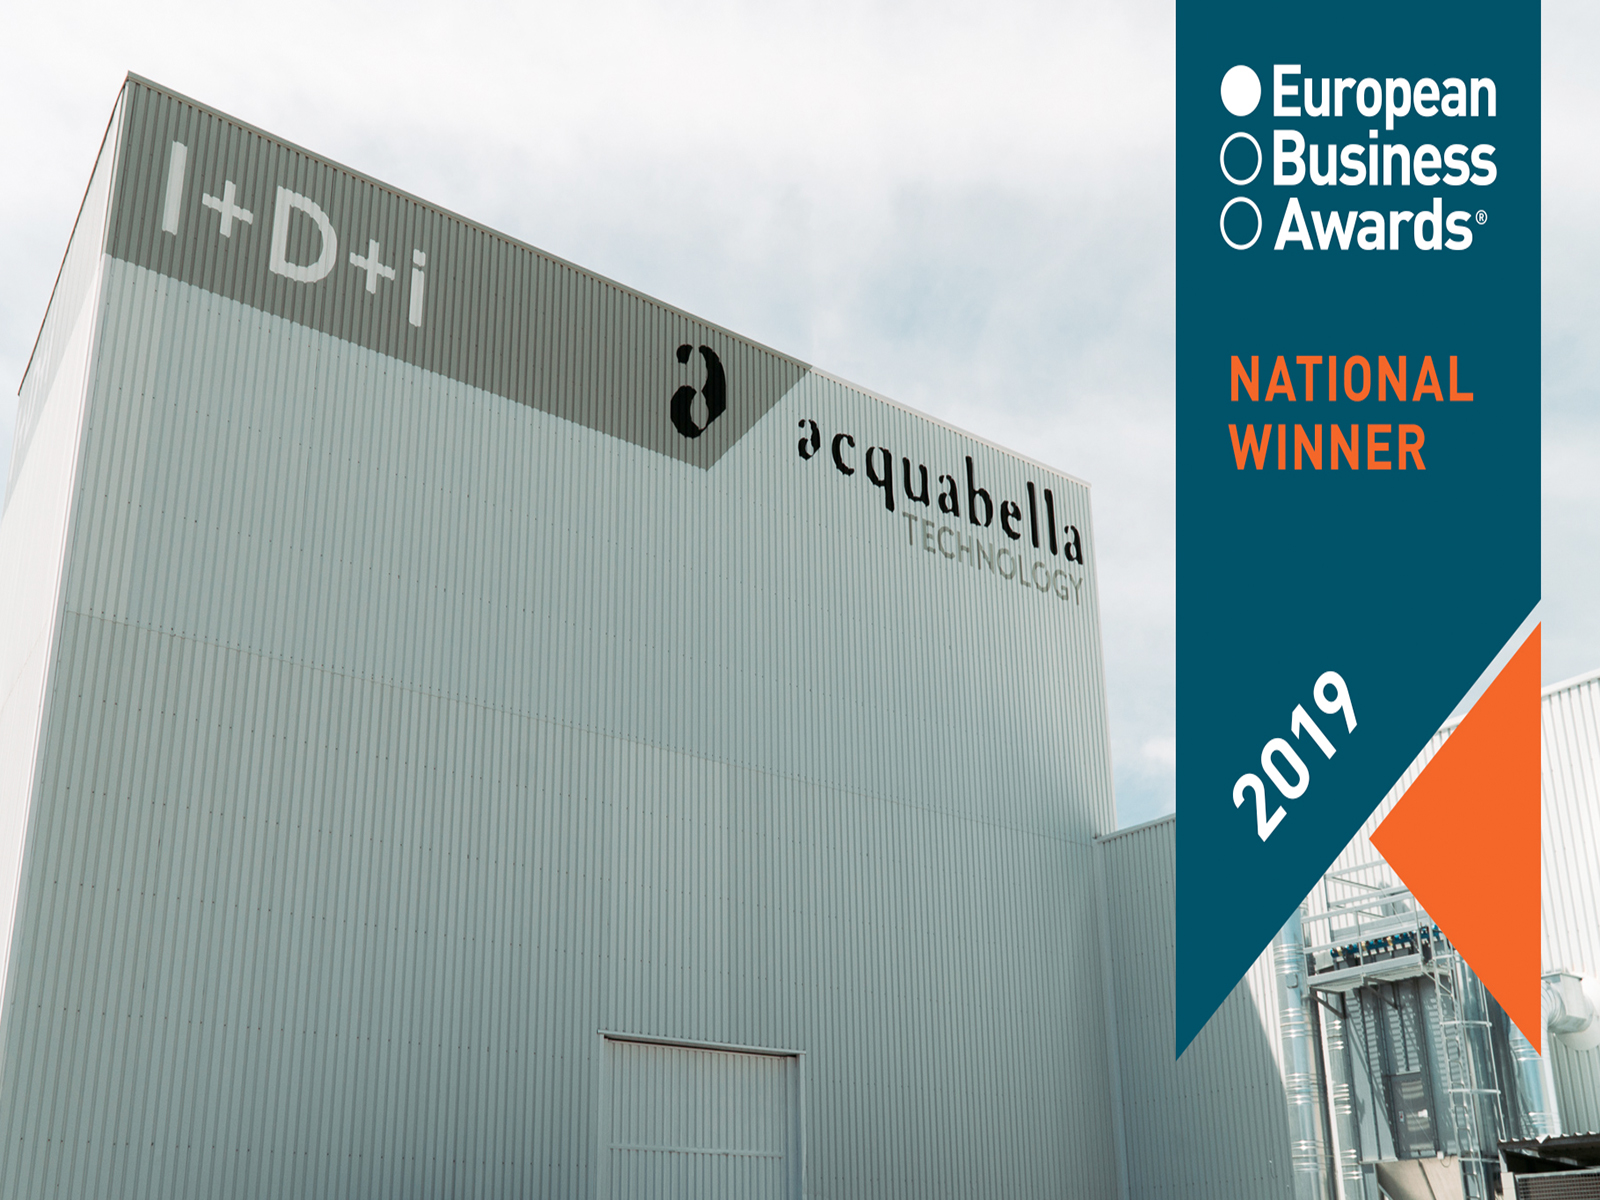 Acquabella, National Winner in the European Business Awards 2019.